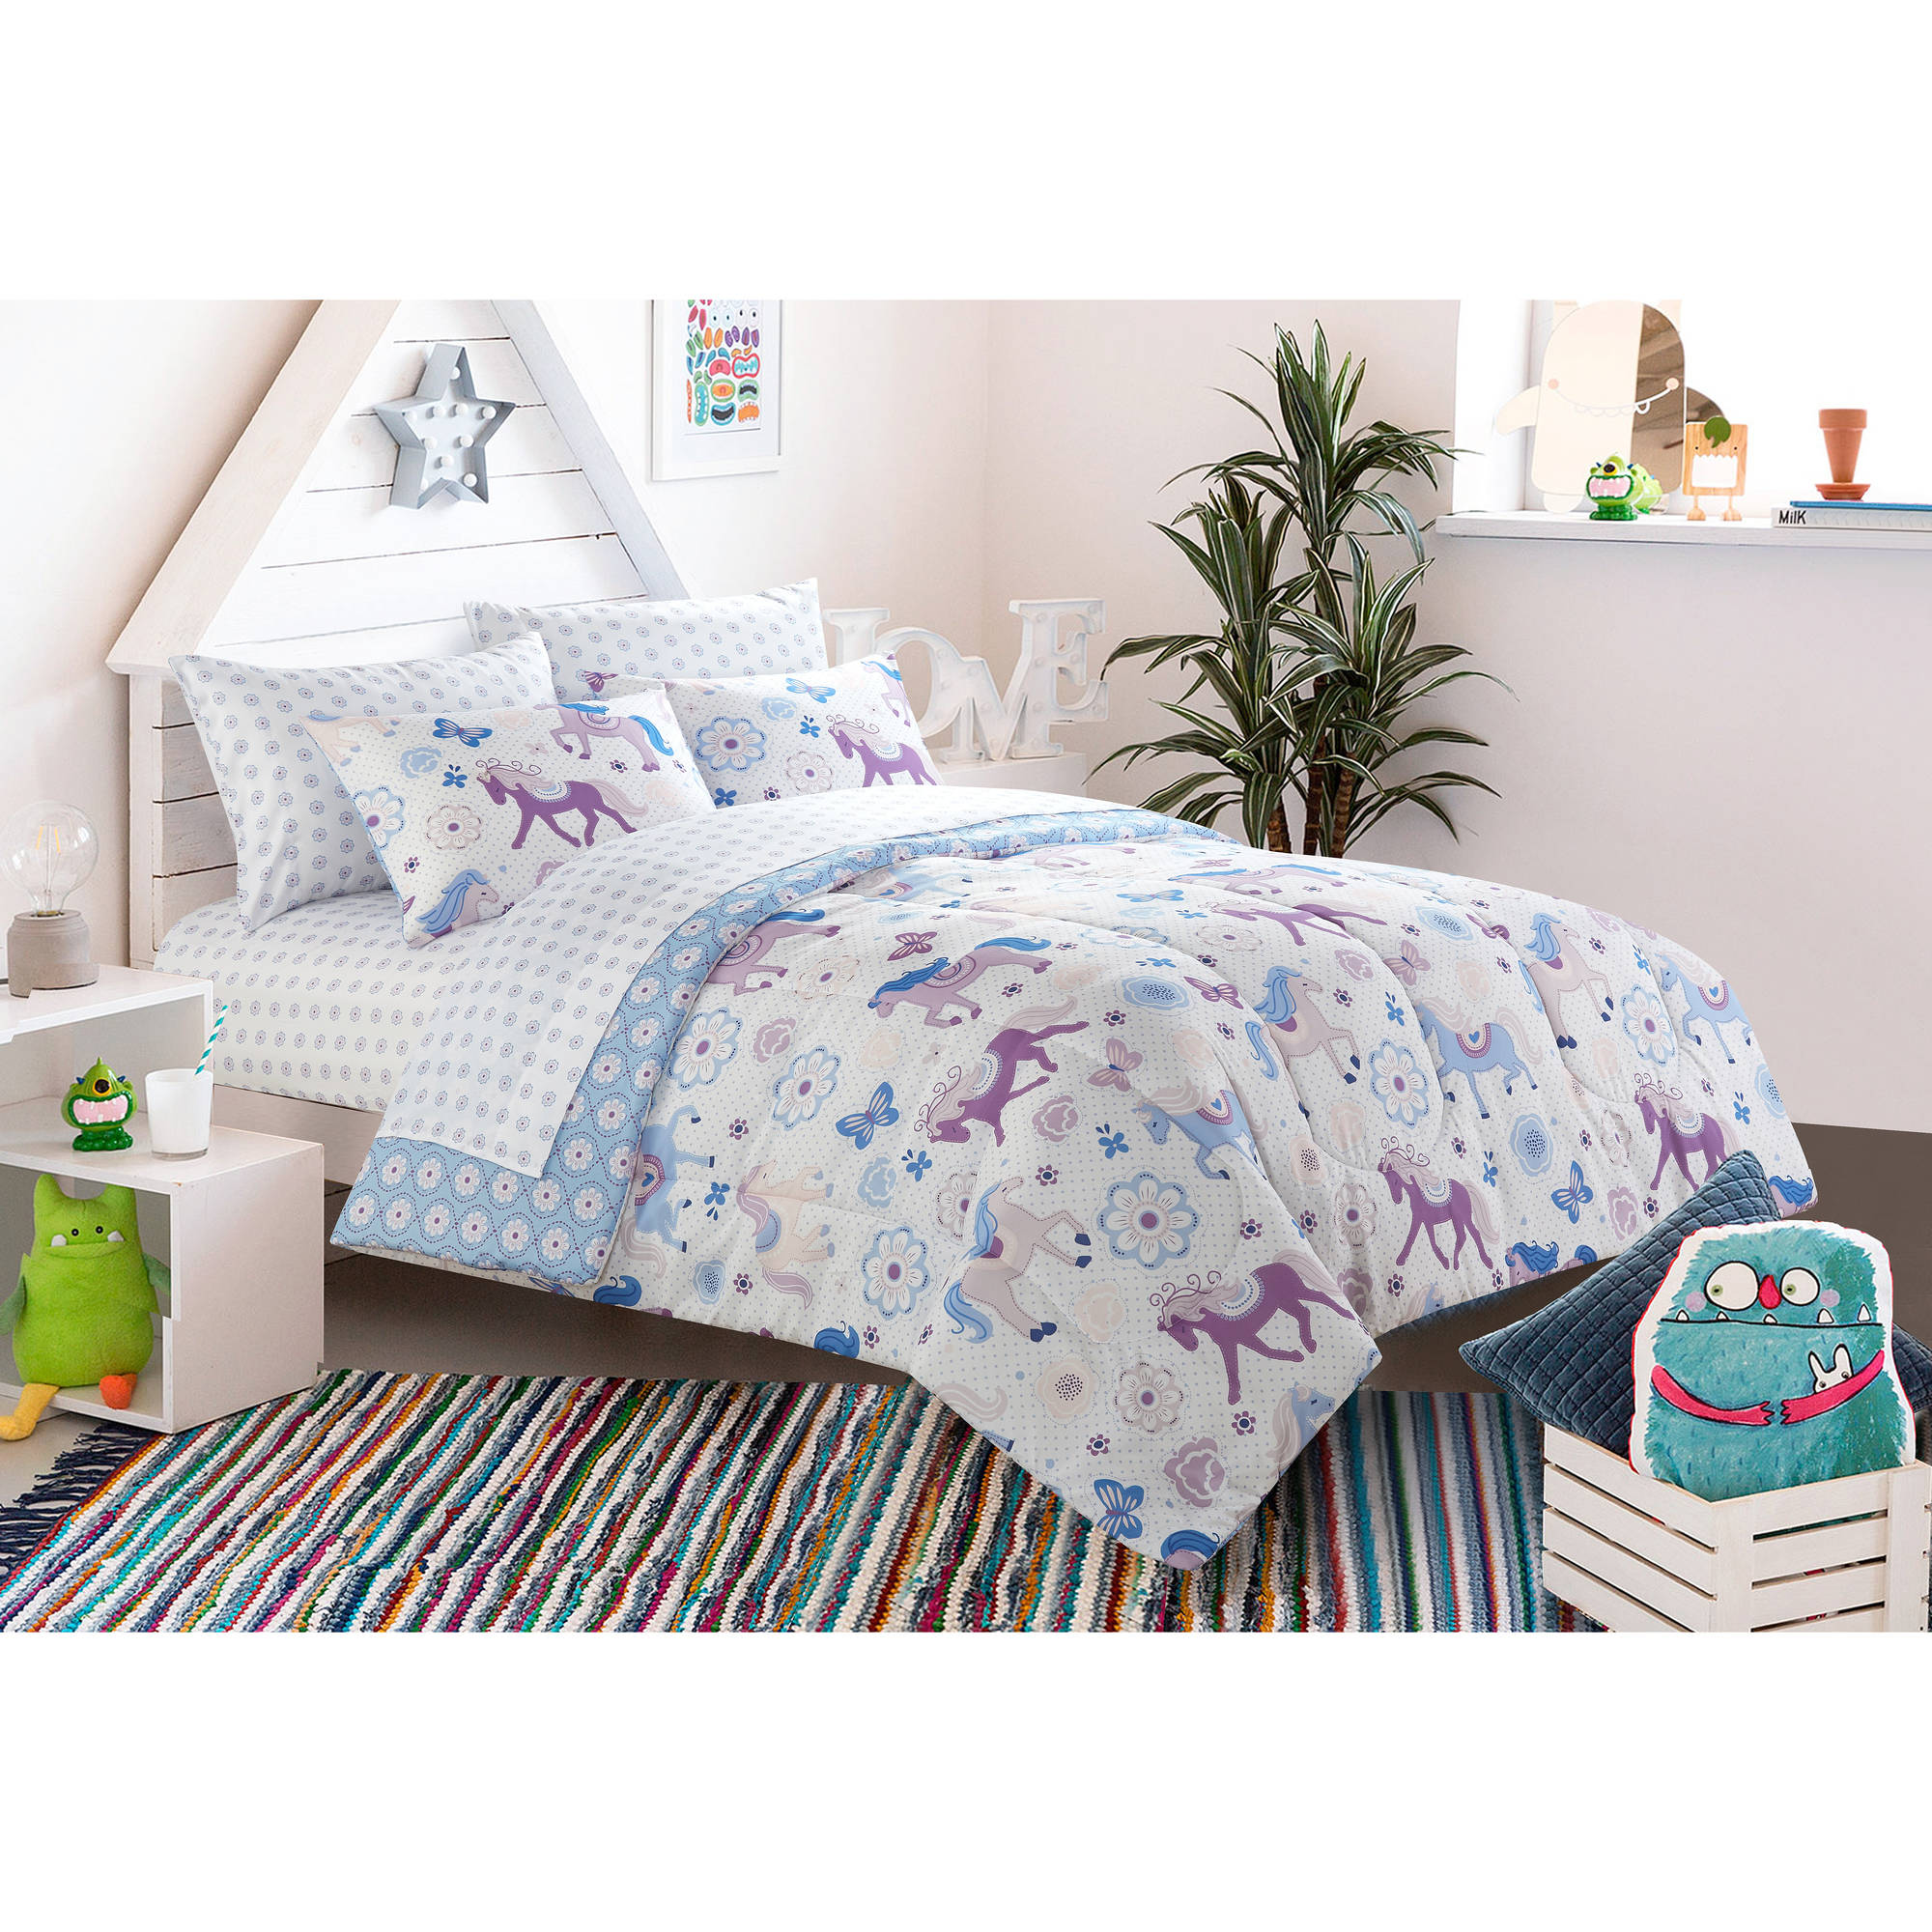 bedding p fish bed ocean full sets set life twin sea kids quilt blue dl comforter white or sealife